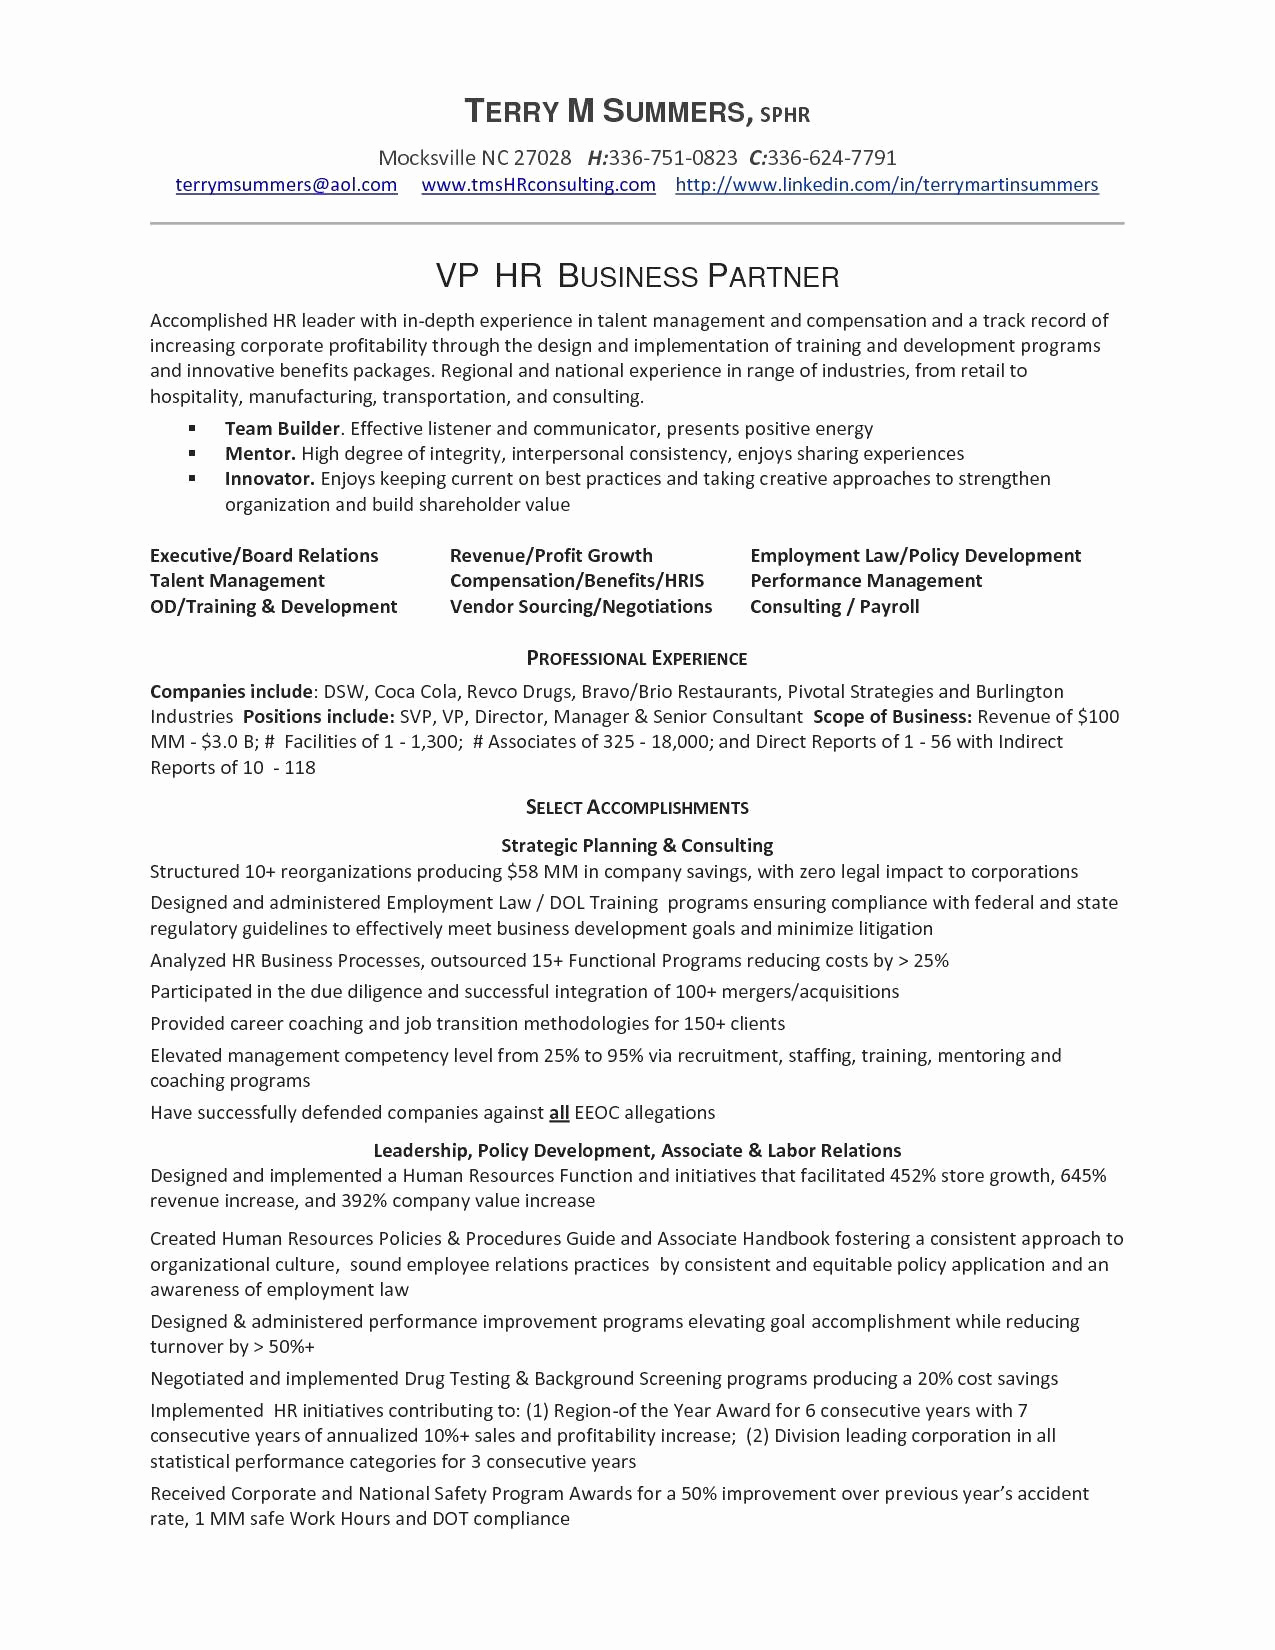 Physical therapy Resume Template - Physical therapist Resume Samples Physical therapist Resumes Fresh